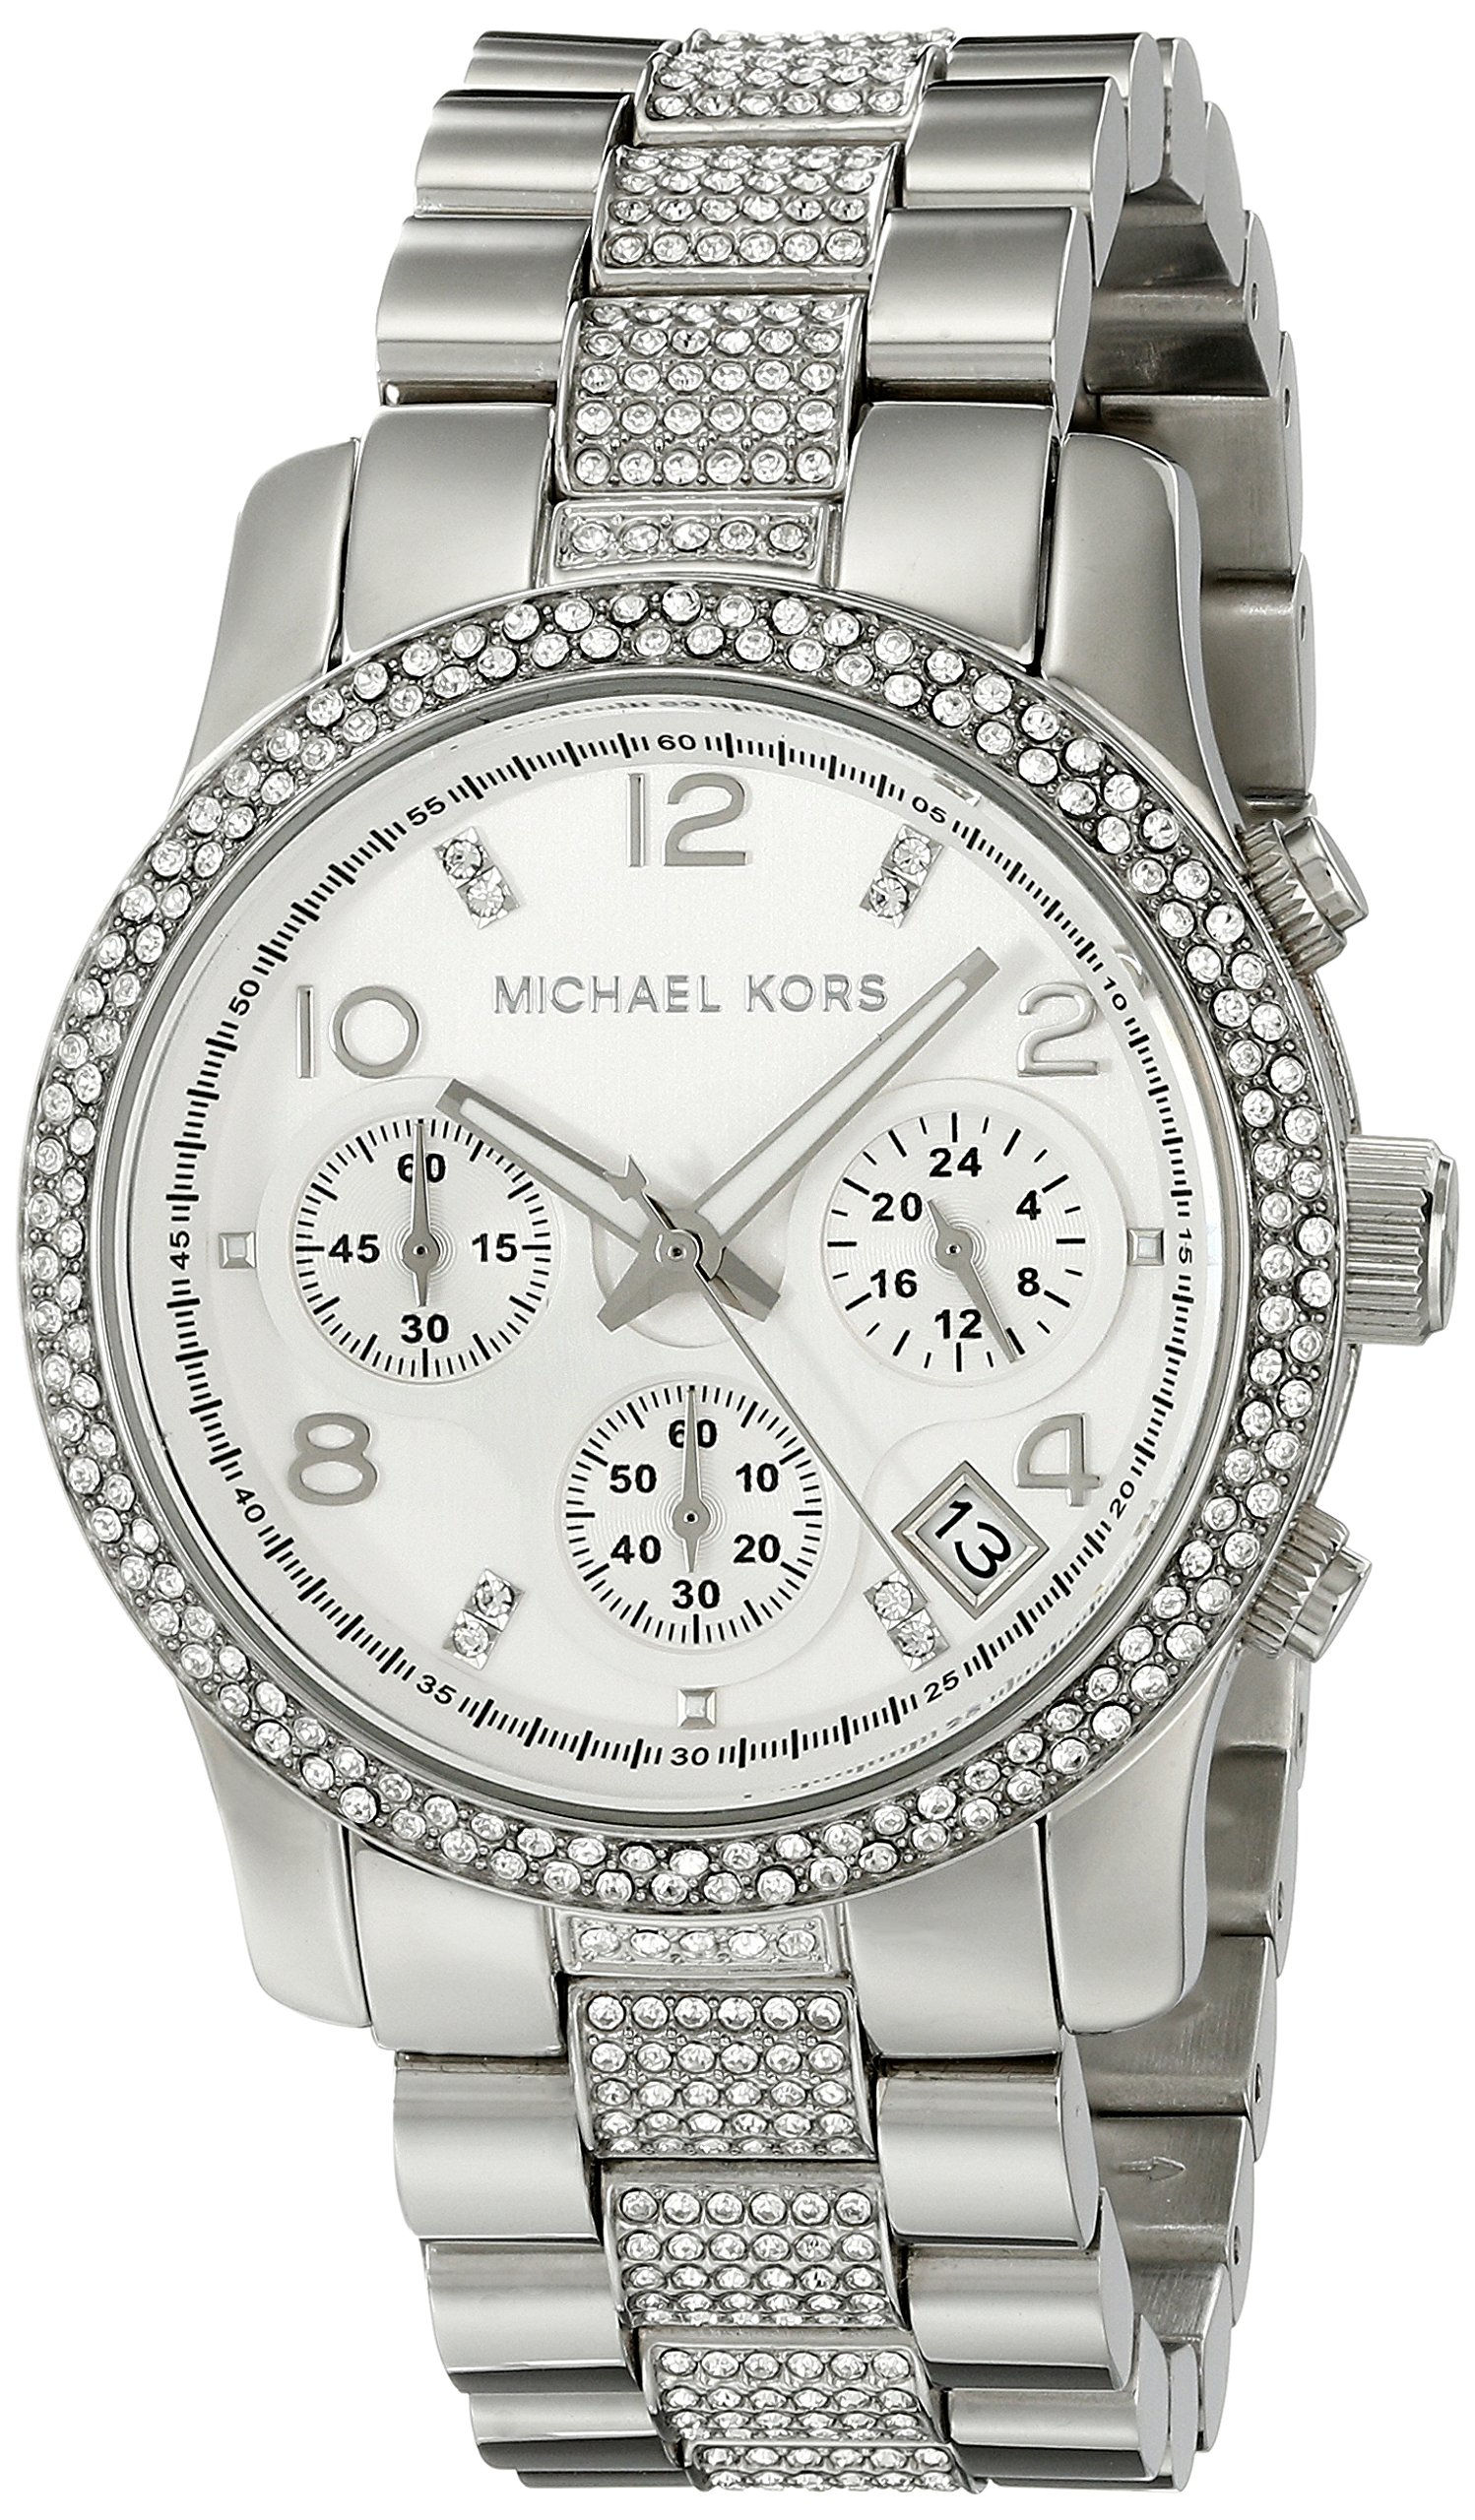 Michael Kors Runway Analog Quartz Silver Stainless Crystal Glitz Chronograph Women's Watch MK5825